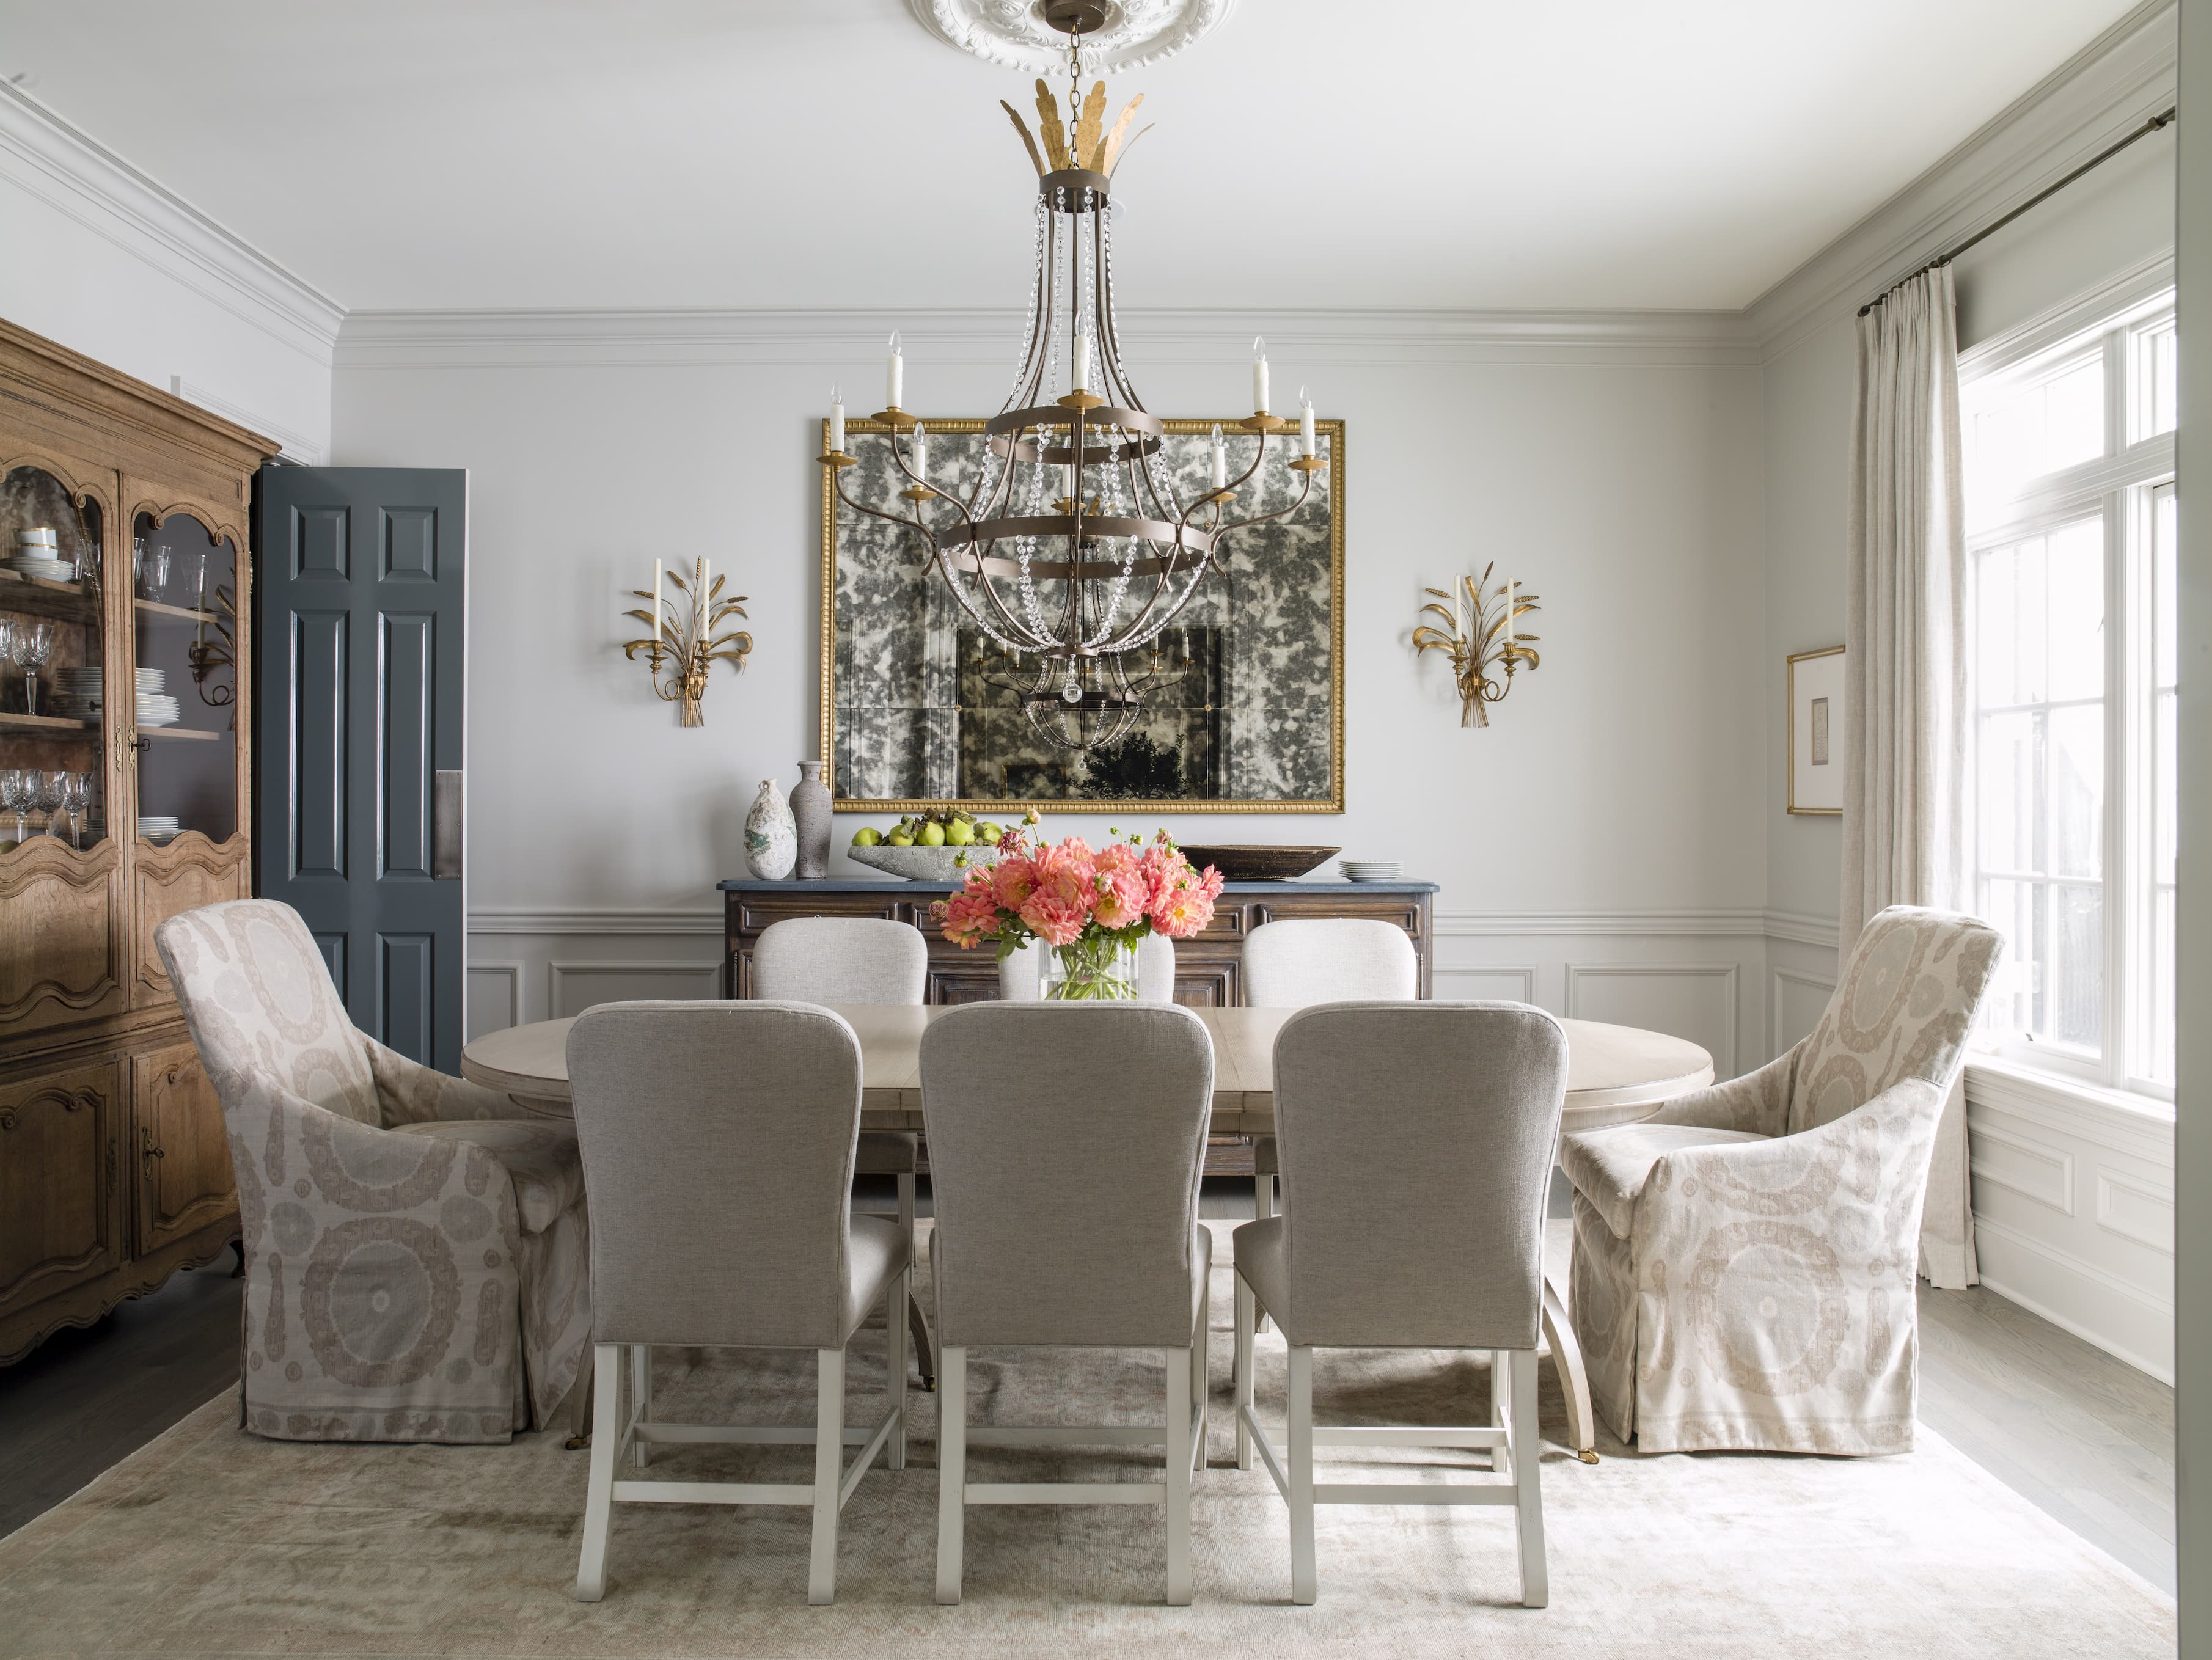 A dining table with fresh flowers and a large chandelier hanging overhead.